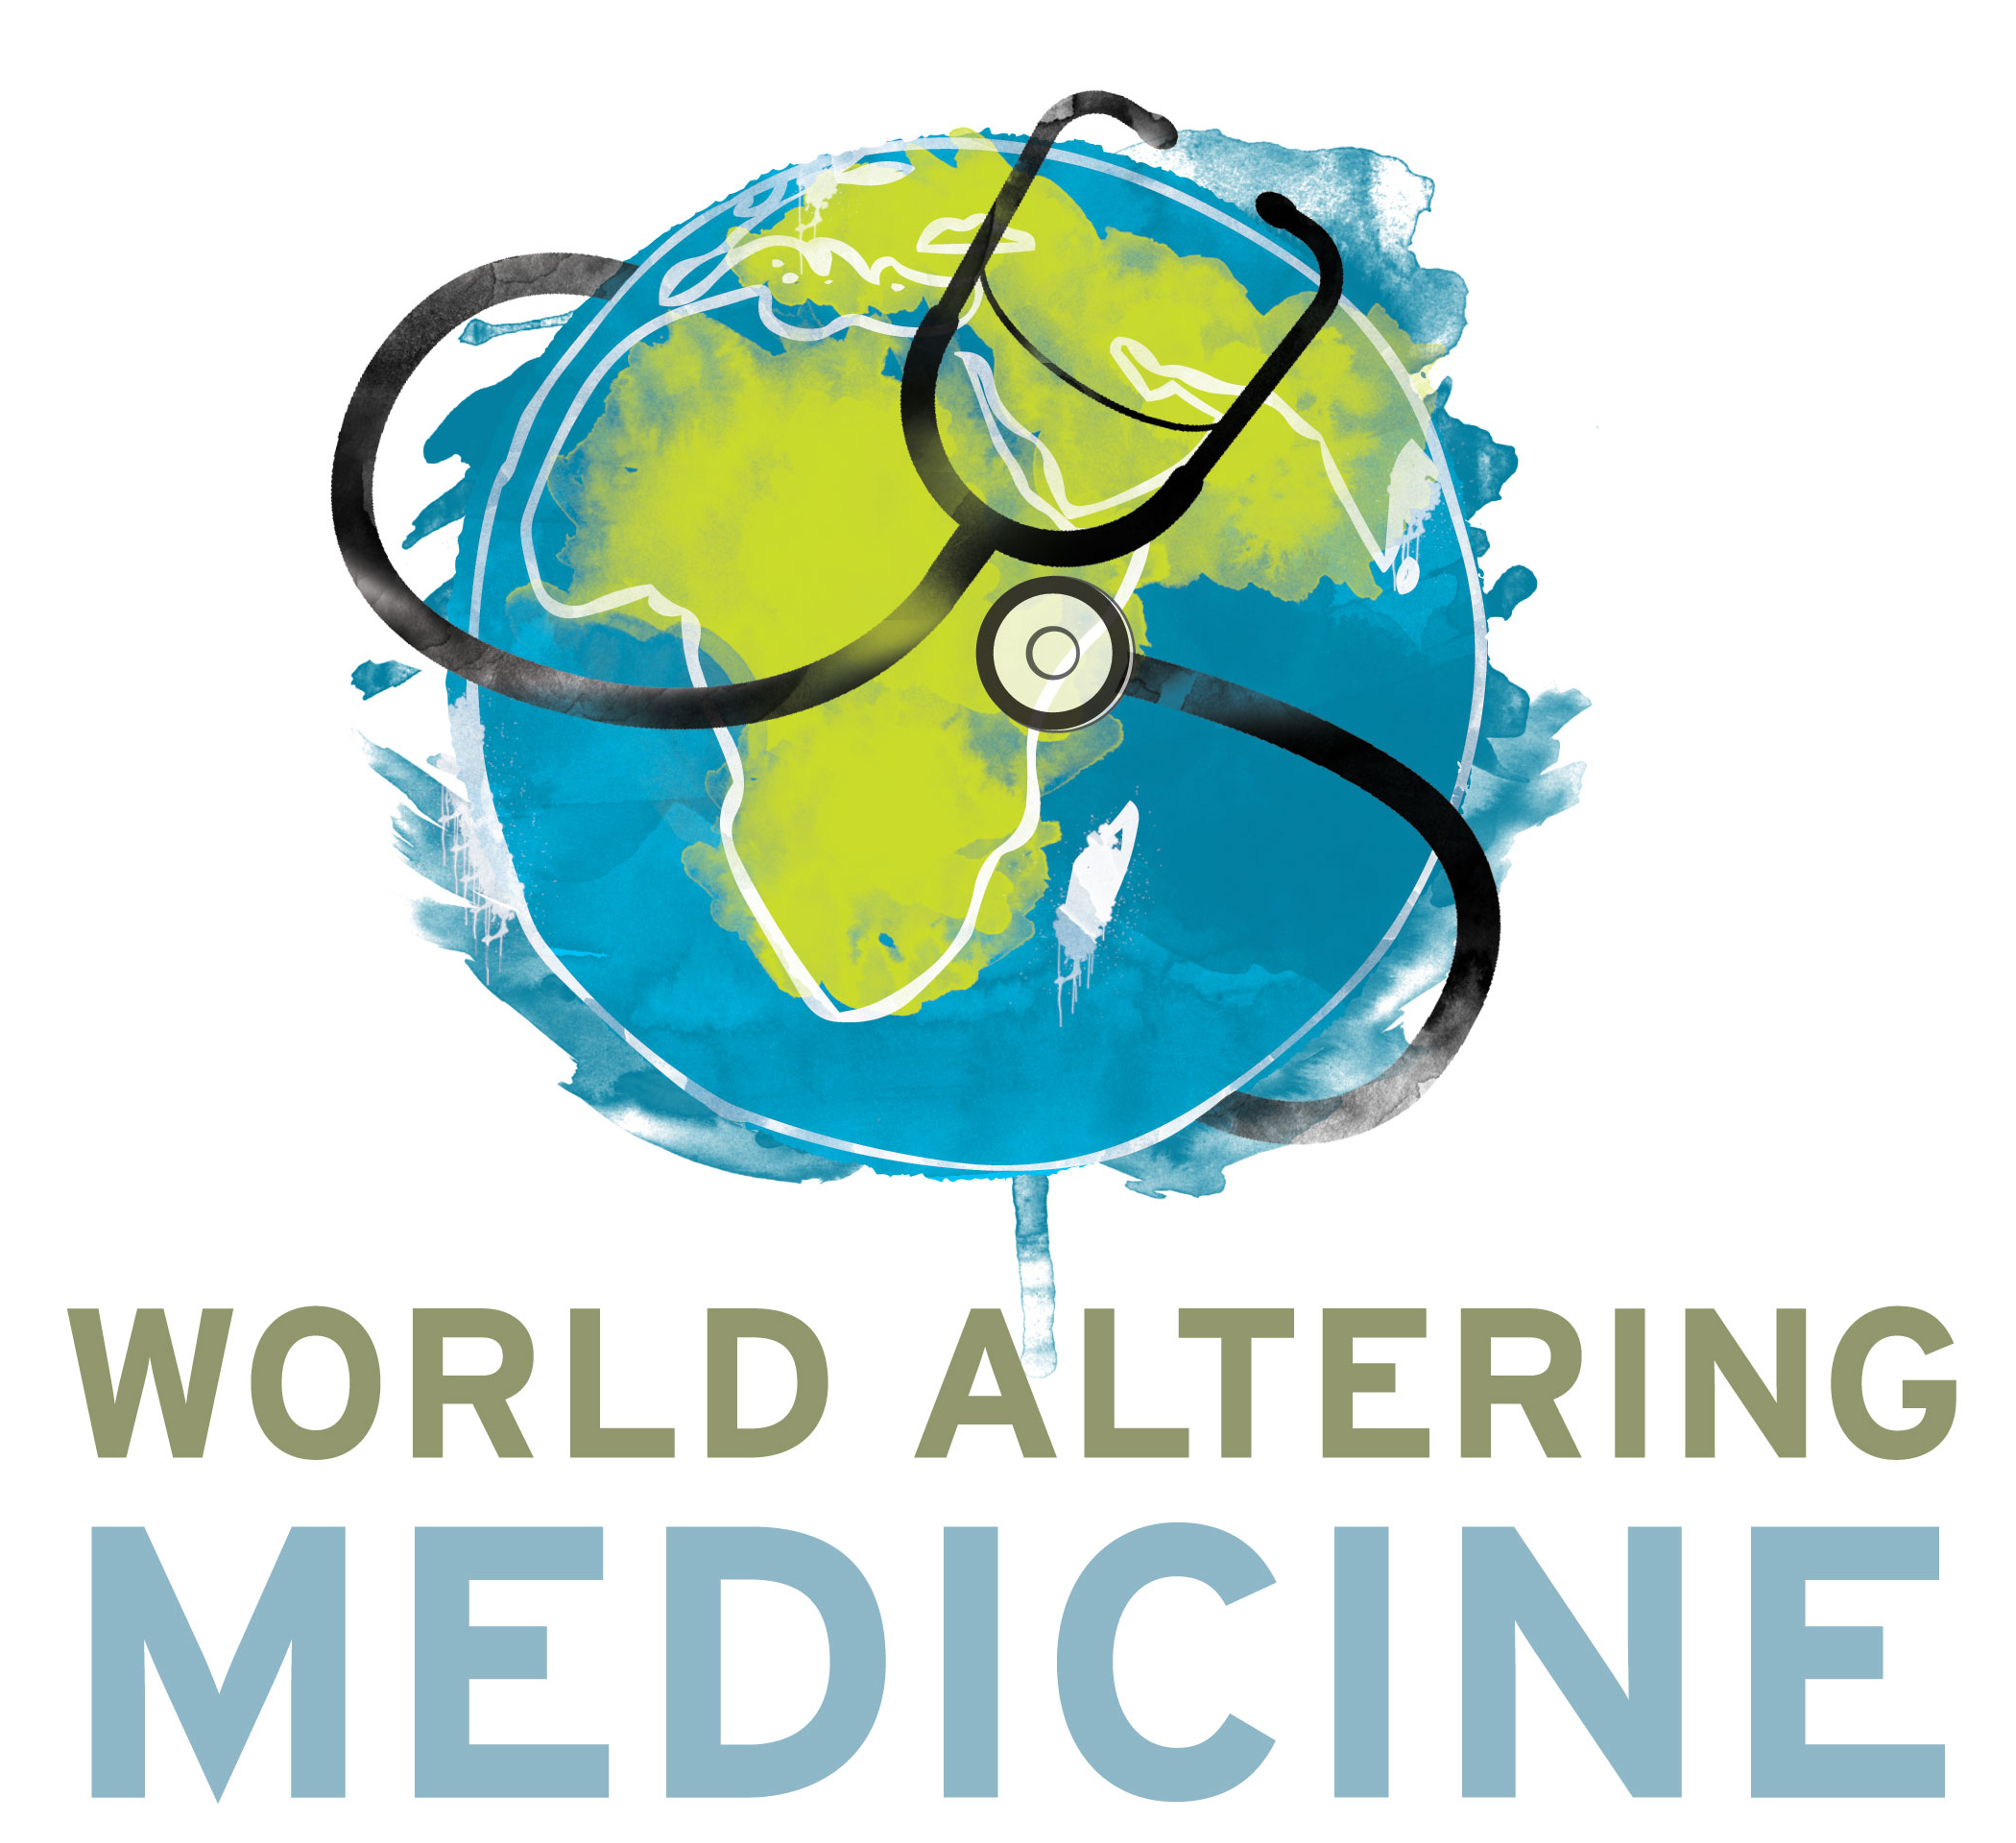 World altering medicine logo